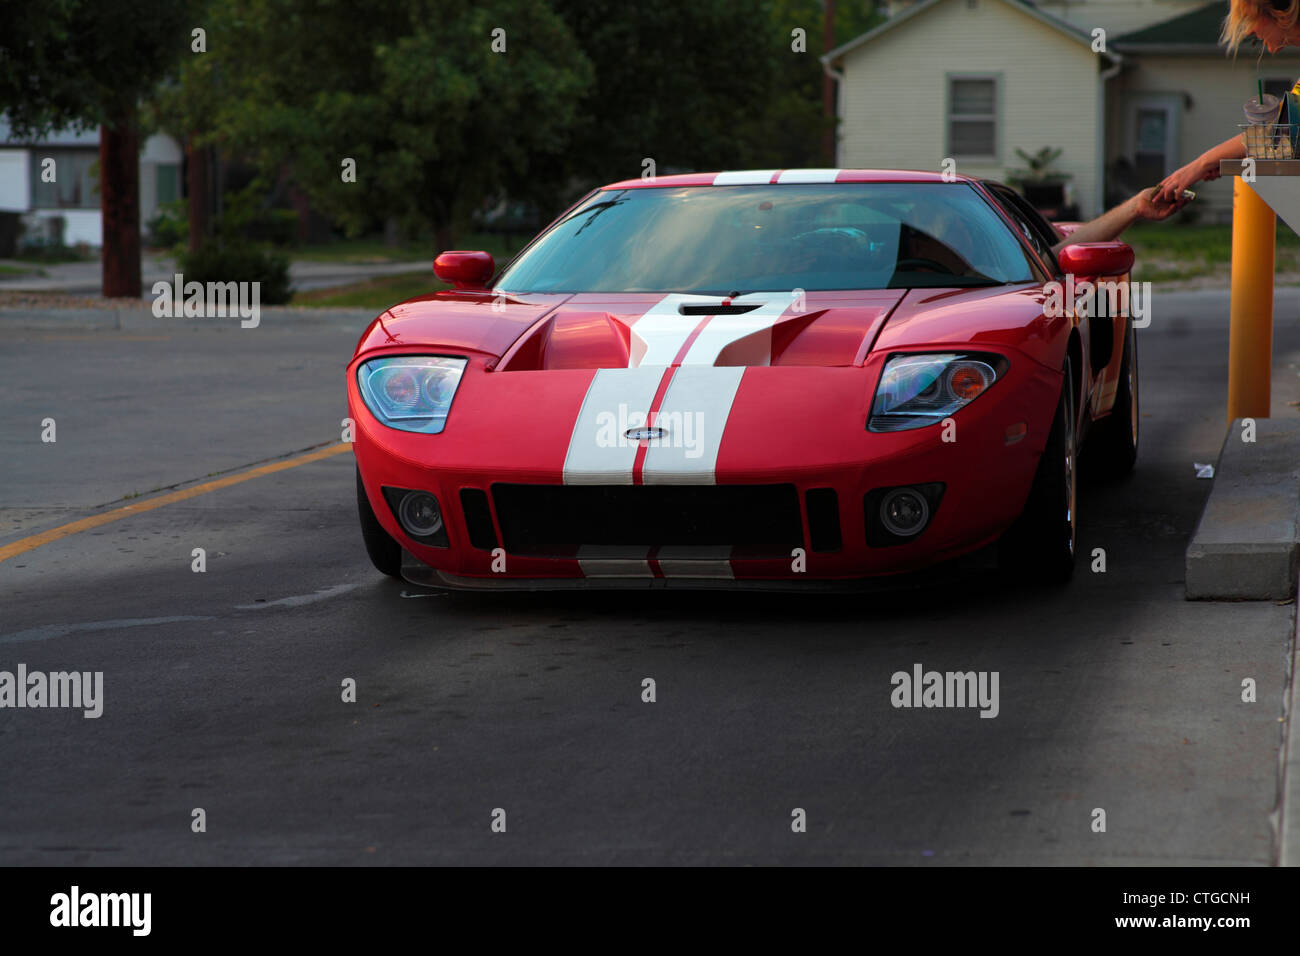 Red And White Striped Ford Gt Sports Car Making Transaction At Drive Through Window